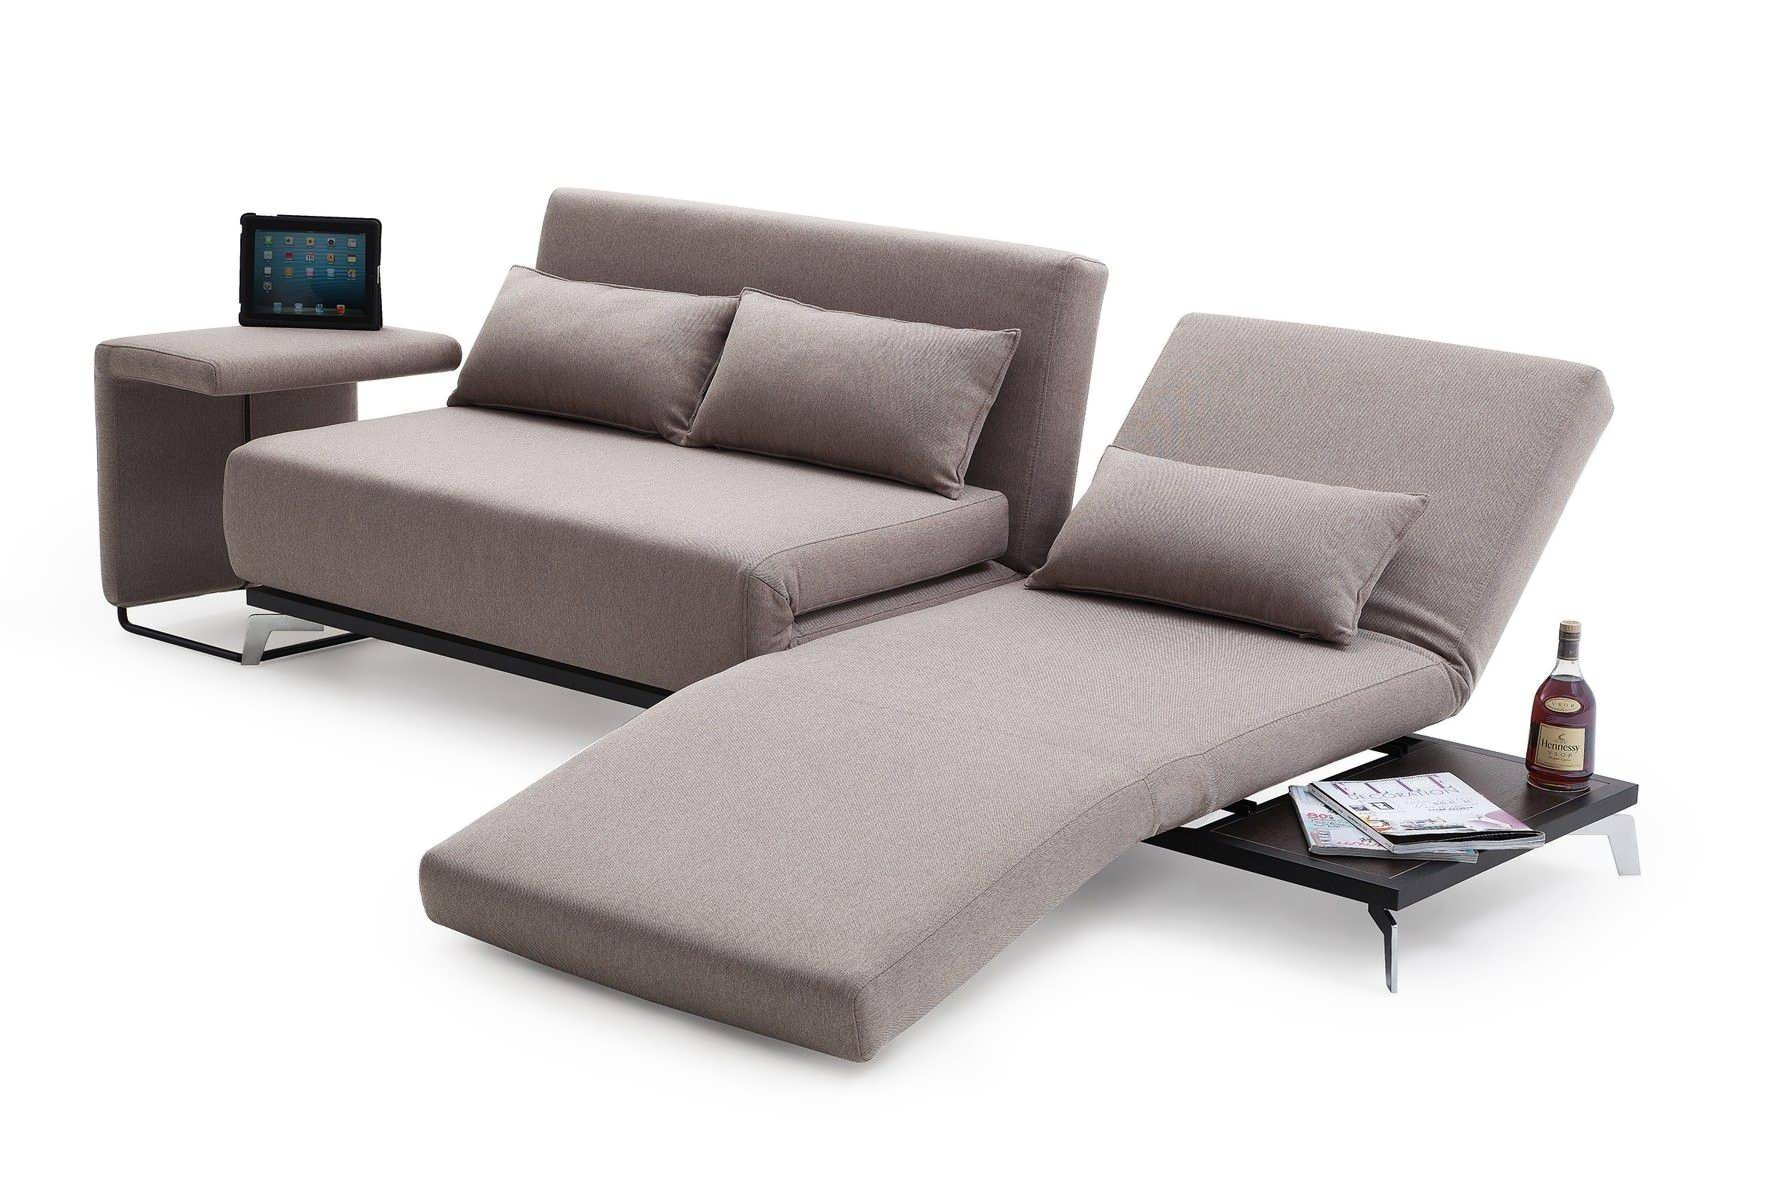 Effective Furniture Cool Sofa Bed Design For Your Living Room With Pertaining To Cool Sofa Beds (Image 8 of 15)